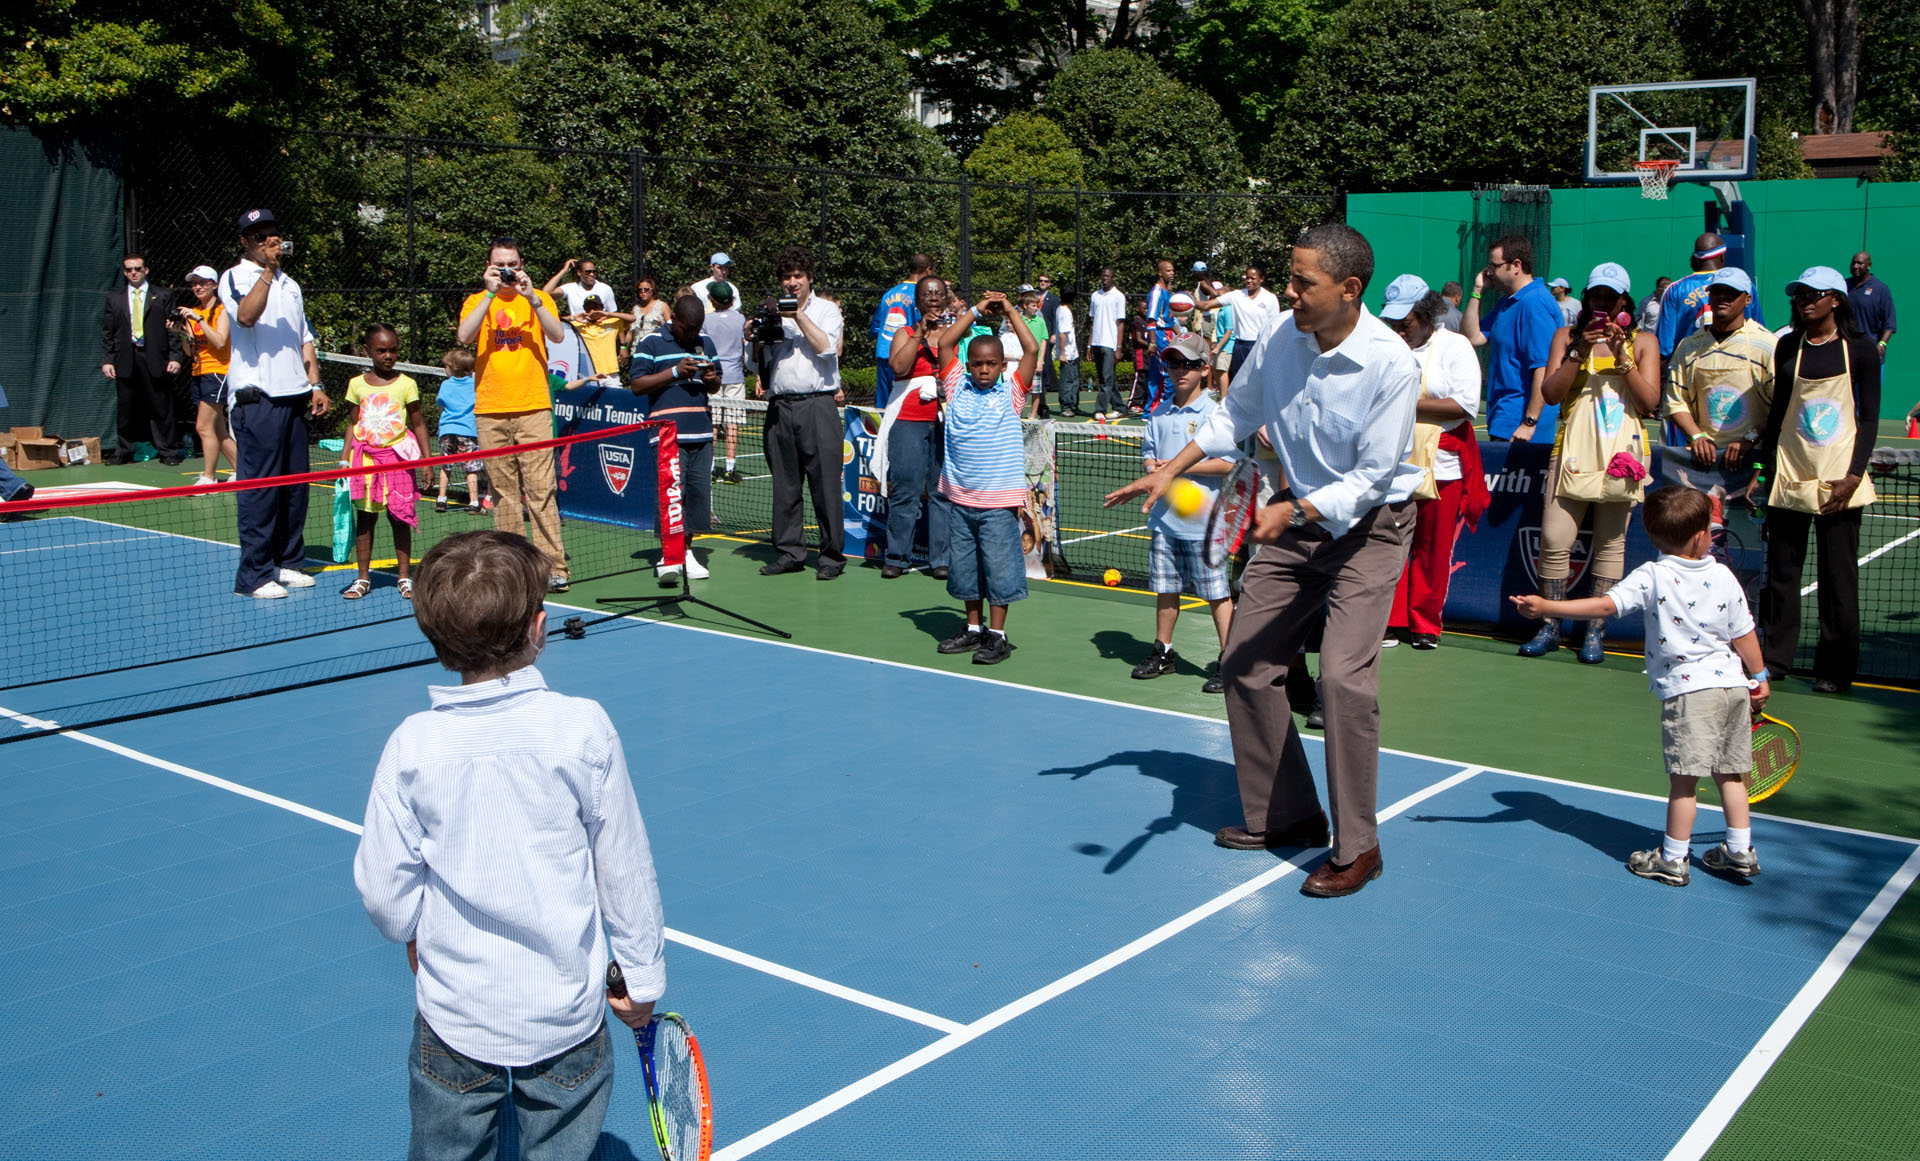 President Barack Obama hits a tennis ball during a sports clinic set up as part of the Easter Egg Roll activities